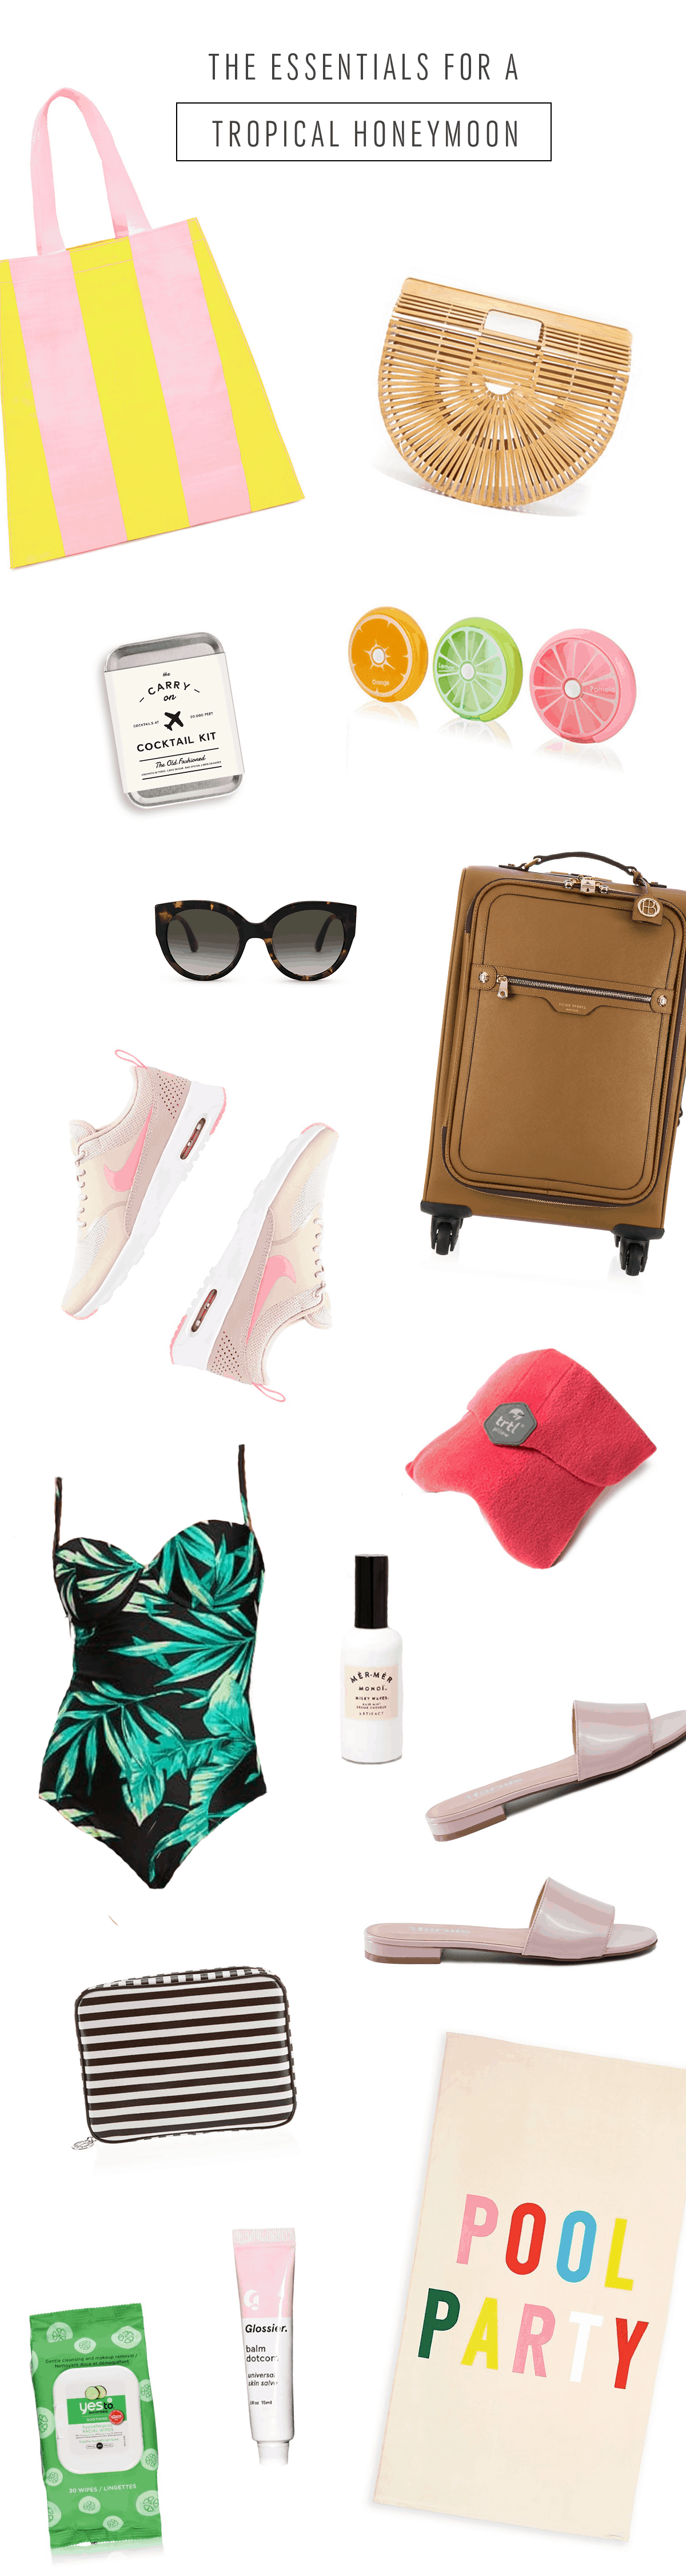 What I'm Packing for Our Honeymoon by Ashley Rose of Sugar & Cloth, an award winning DIY blog.